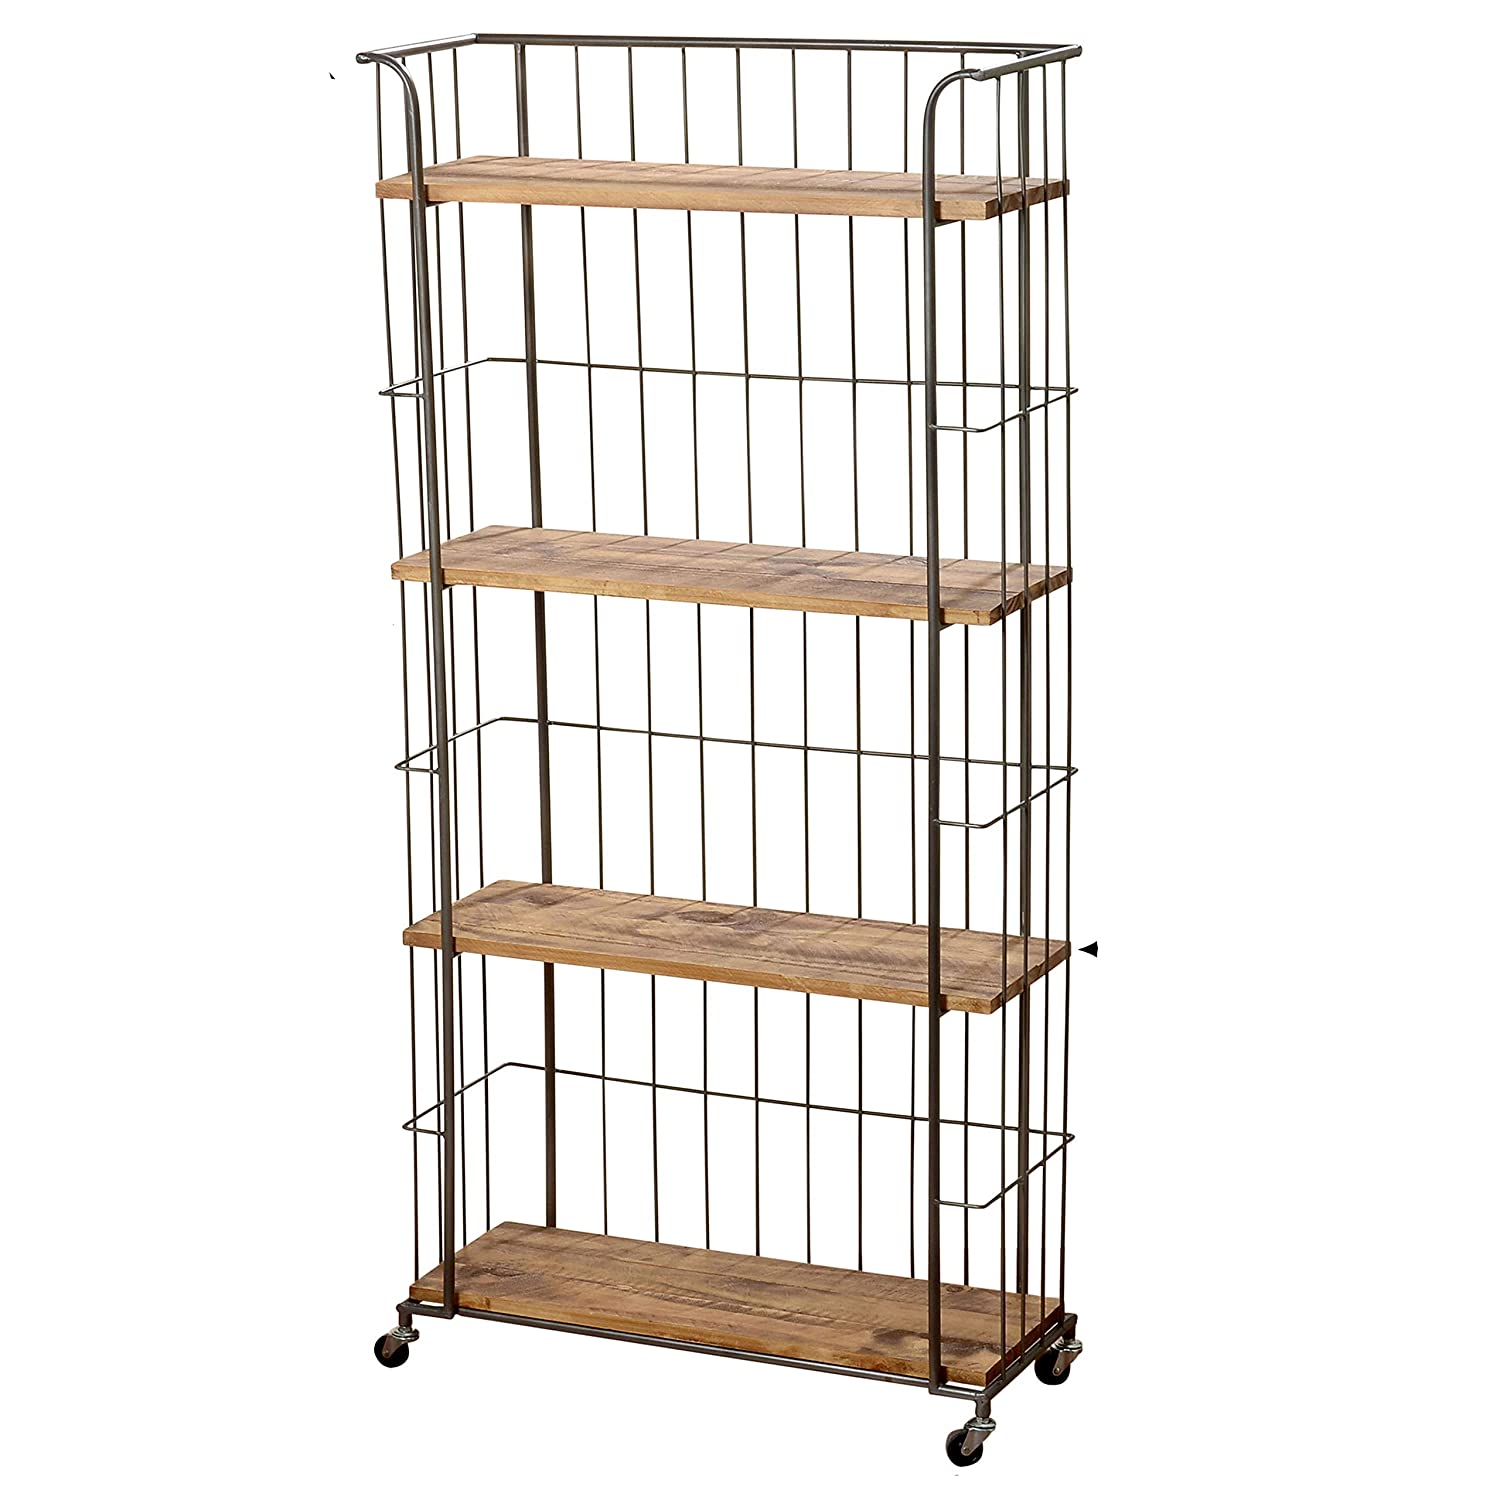 WHW Whole House Worlds Urban Chic Rolling Rack with 4 Plank Shelves, Wheels, Metal and Wood, Approx. 5 ft Tall 59 Inches – 150 cm